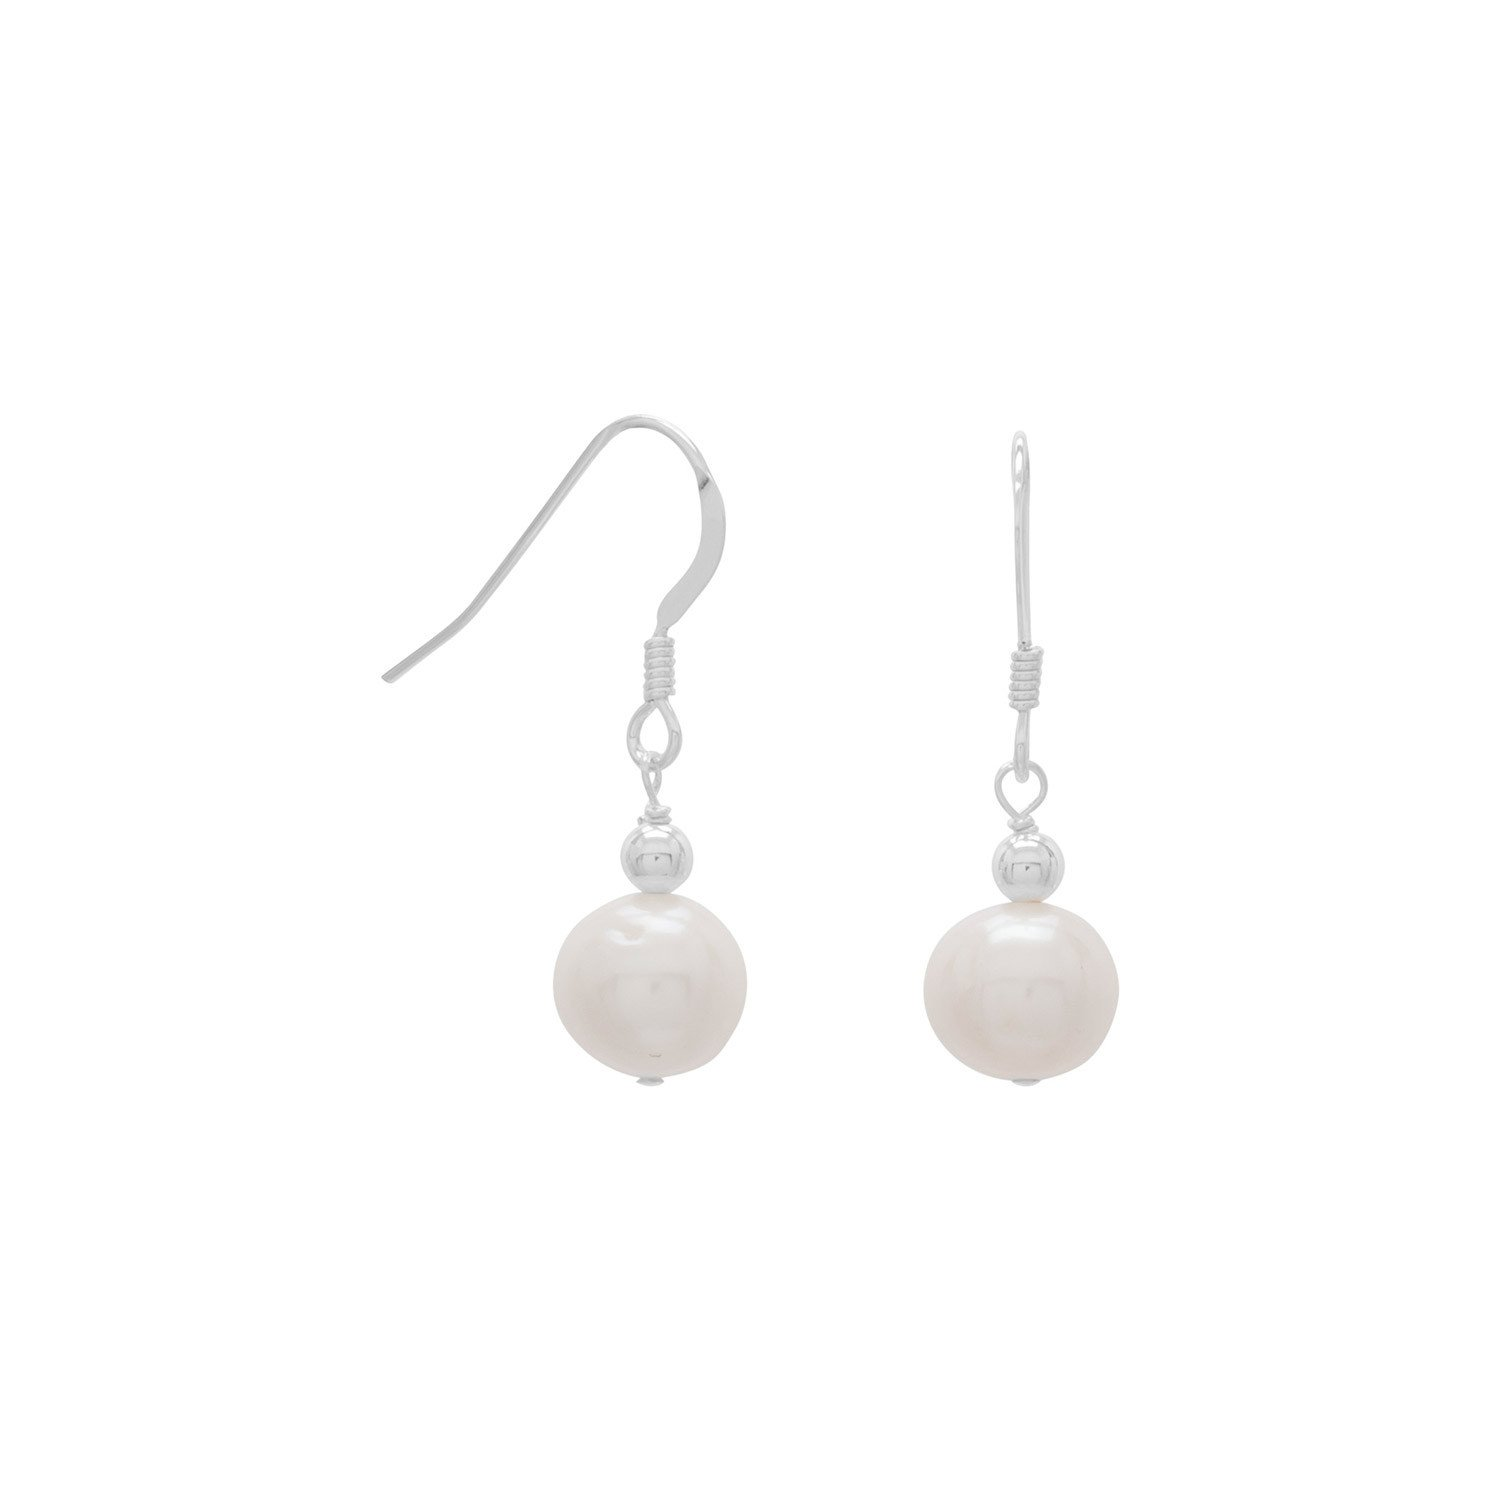 7mm White Cultured Freshwater Pearl Earrings on French Wire